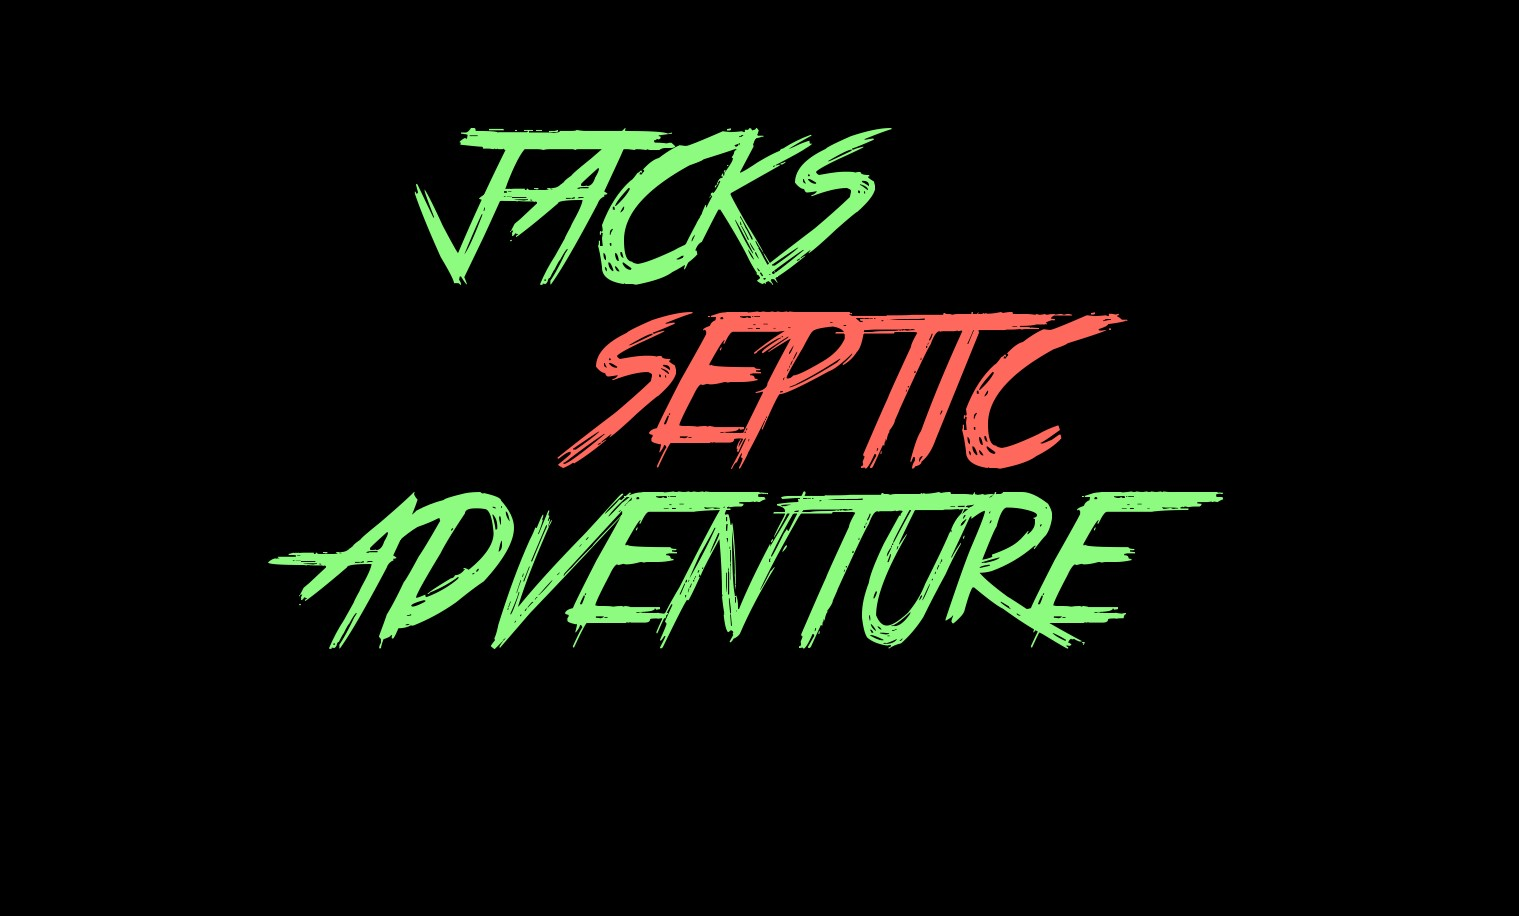 Jacks Septic Adventure YoutuberGamejam